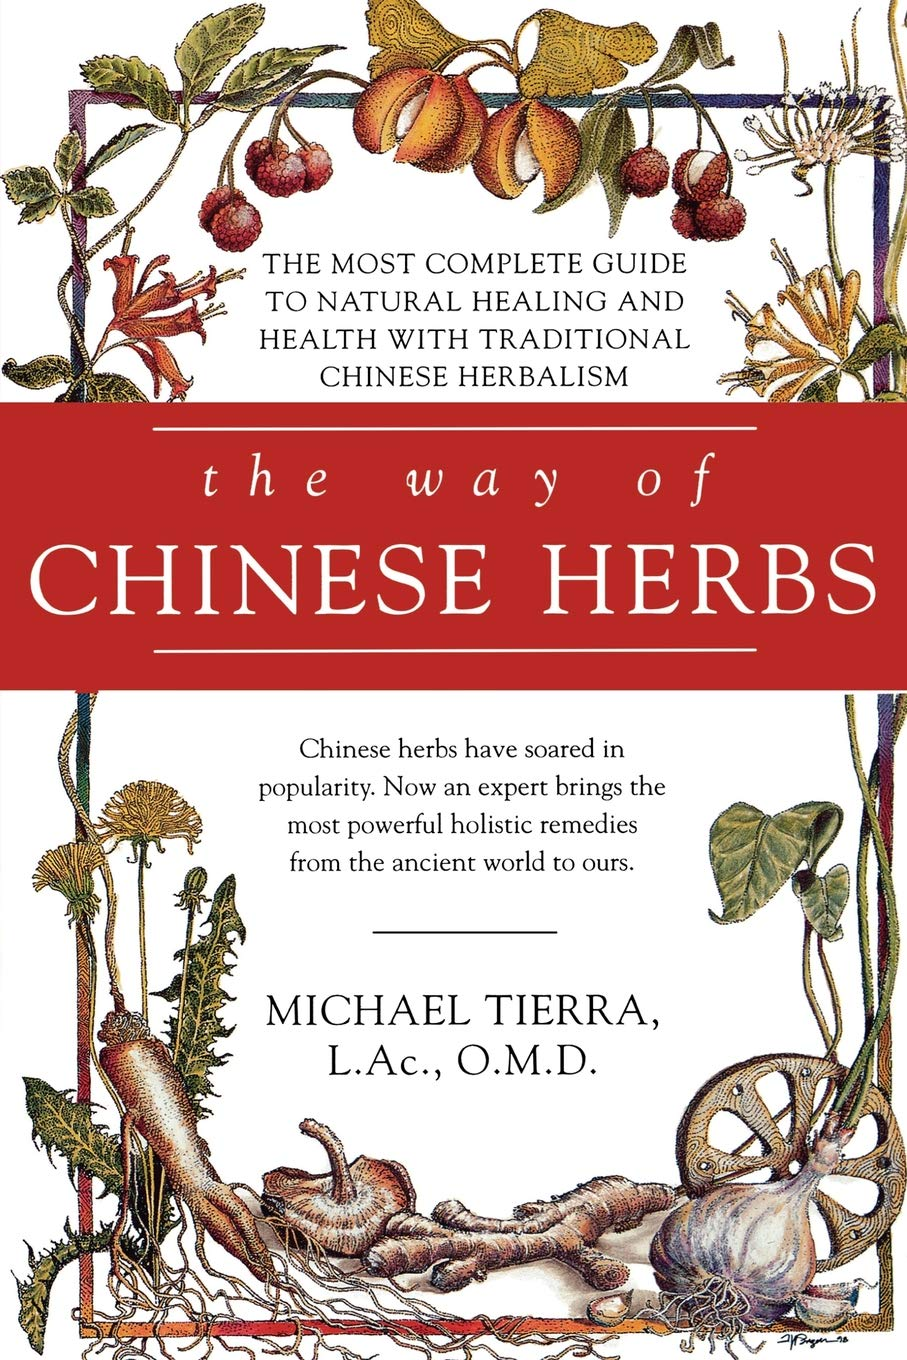 The Way of Chinese Herbs: Michael Tierra: 9780671898694